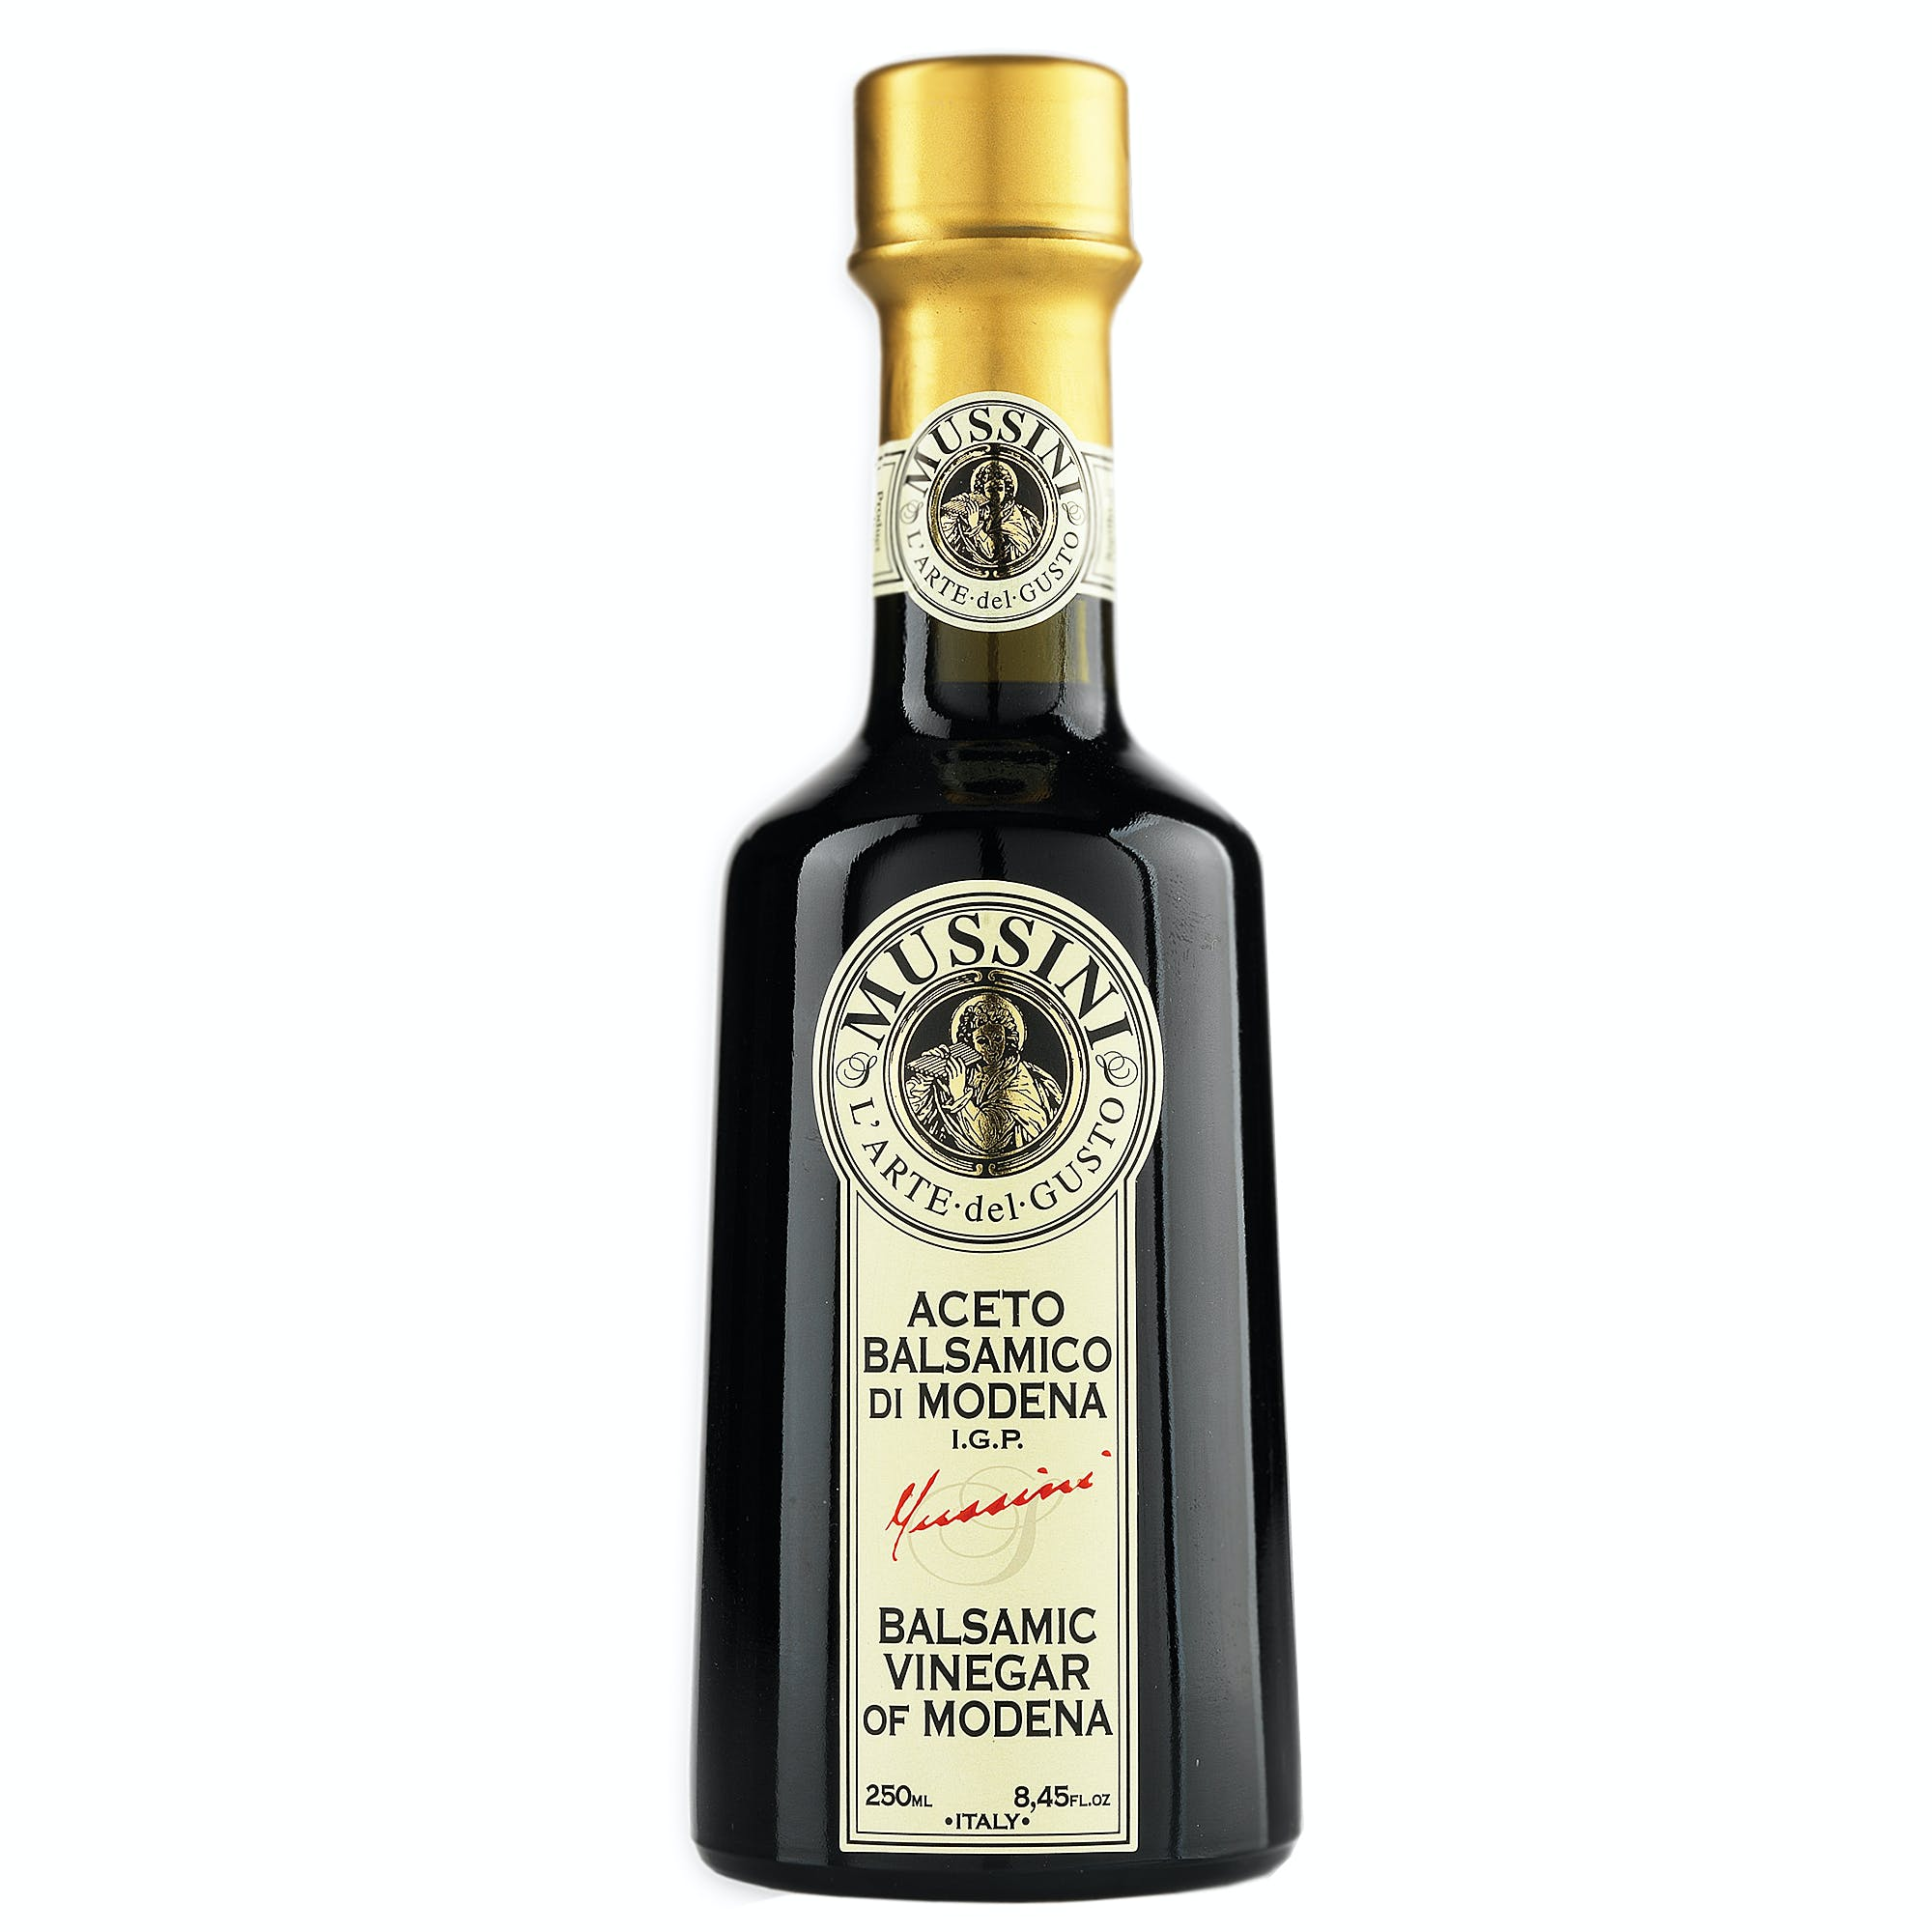 One Coin 3 Year Balsamic Vinegar Balsamic Vinegar sold by M5 Corporation